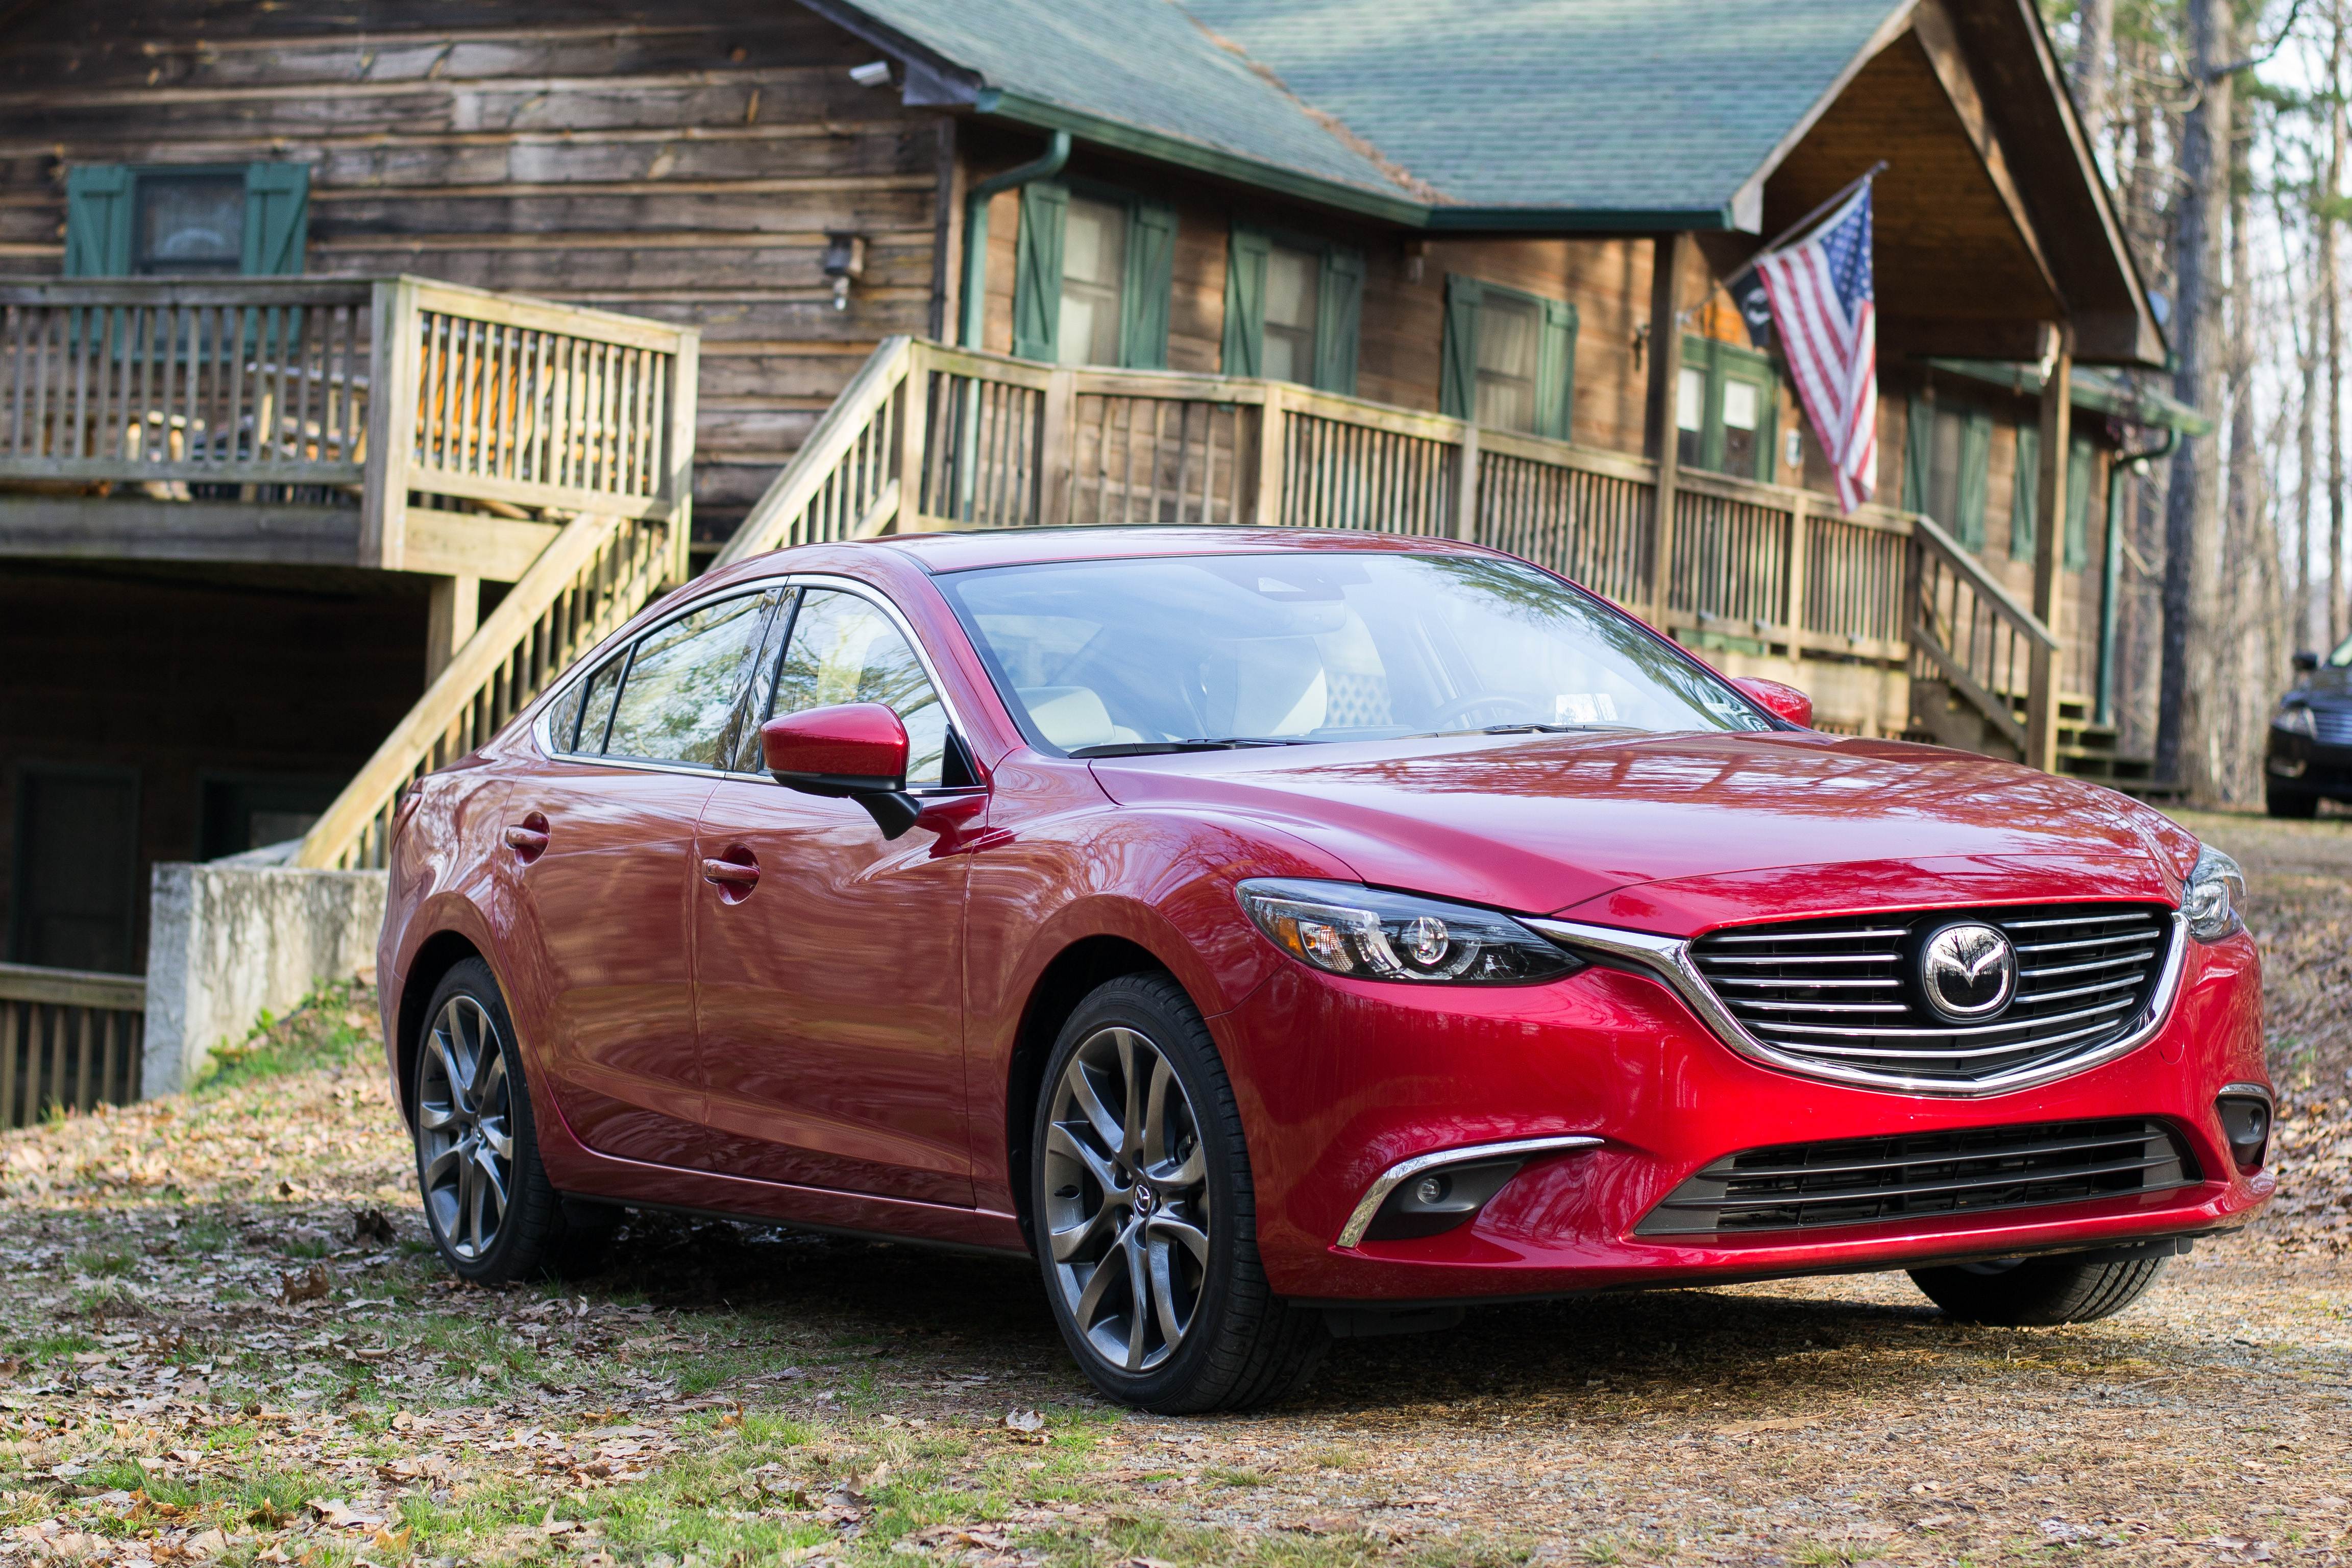 Friend's Weekend Getaway in the North Georgia Mountains with Mazda6